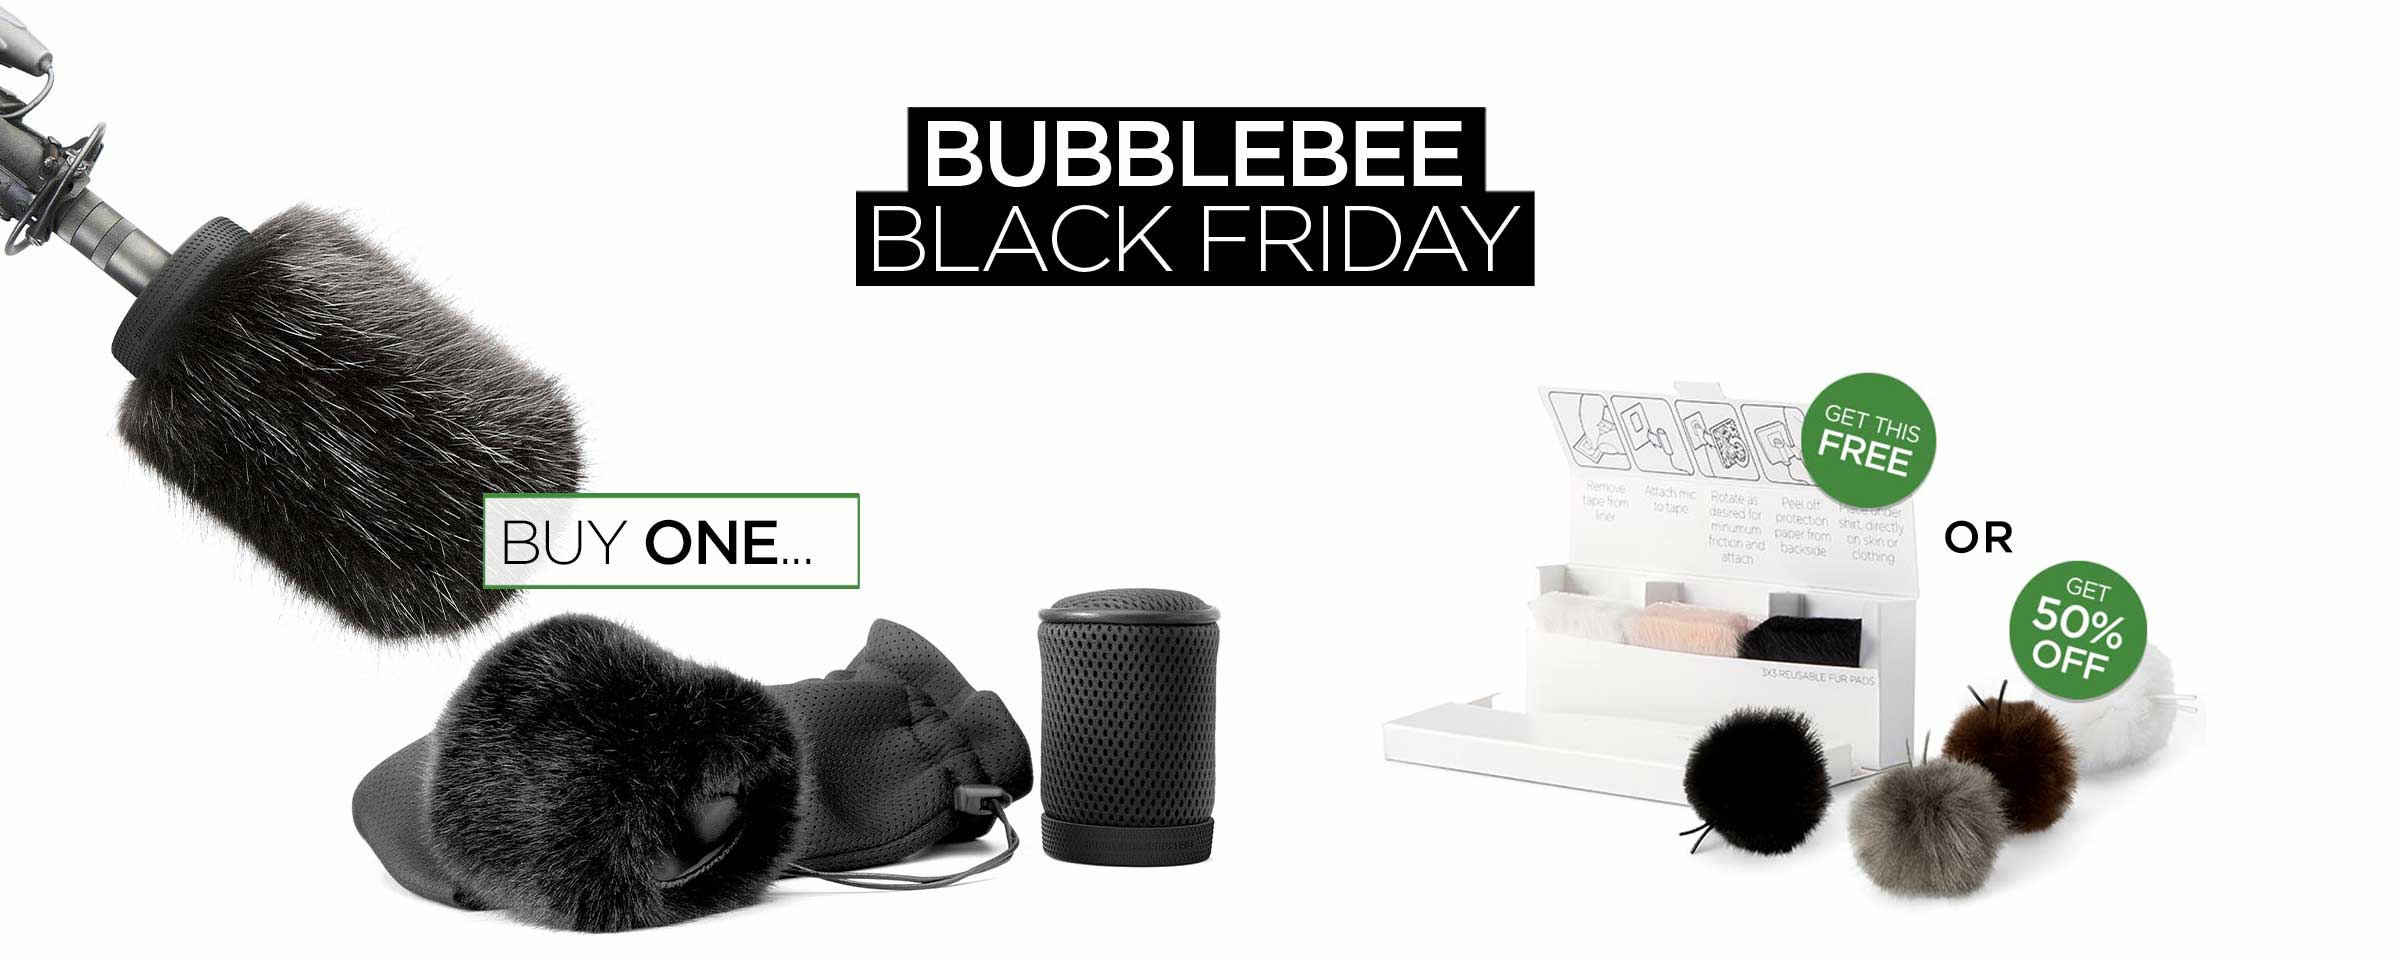 Bubblebee Black Friday 2018